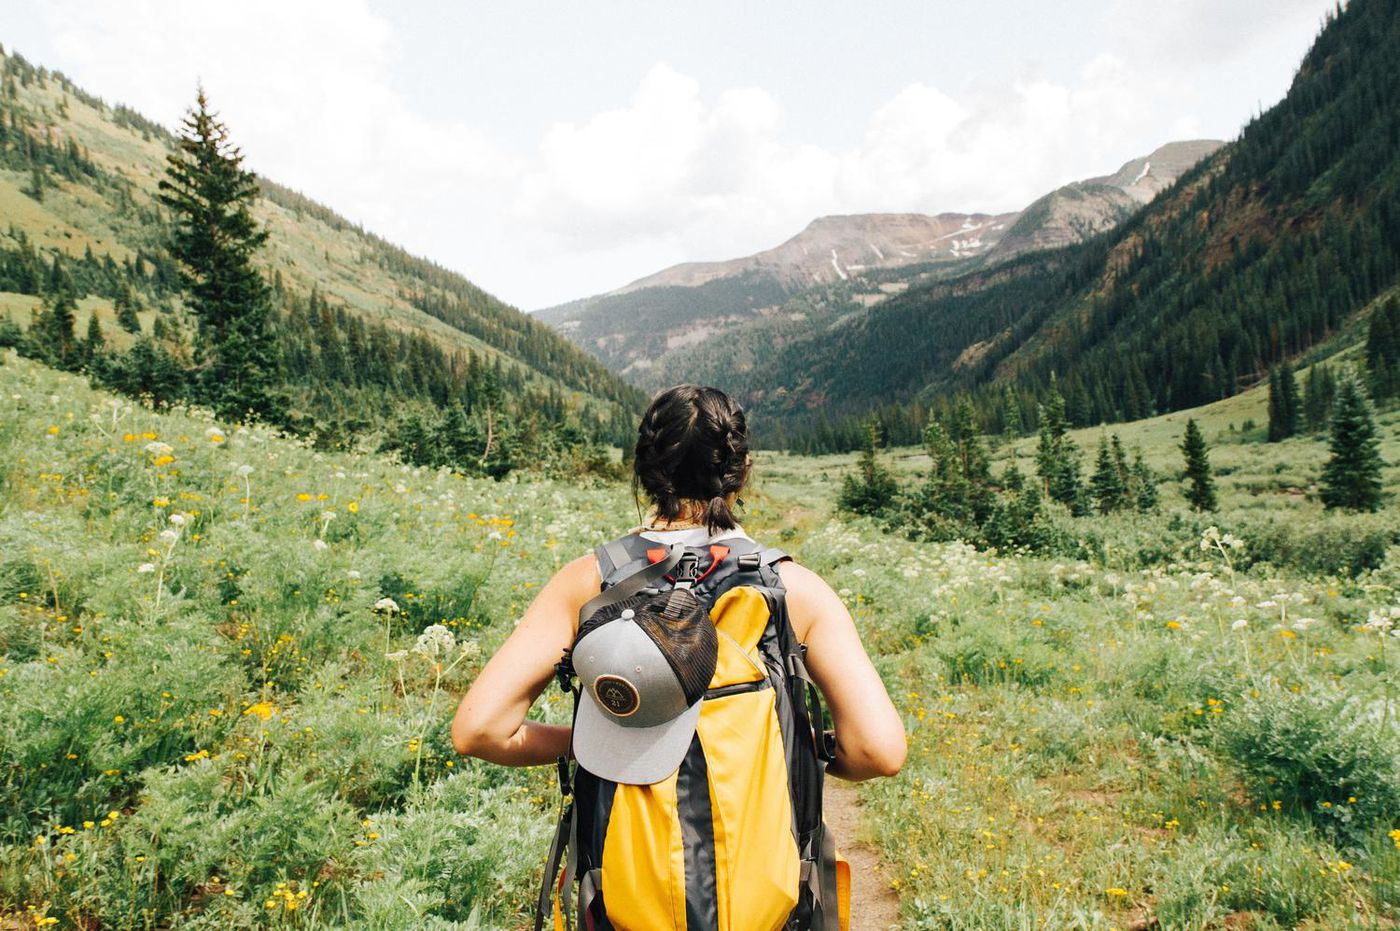 6 Brands To Shop For Outdoor Gear